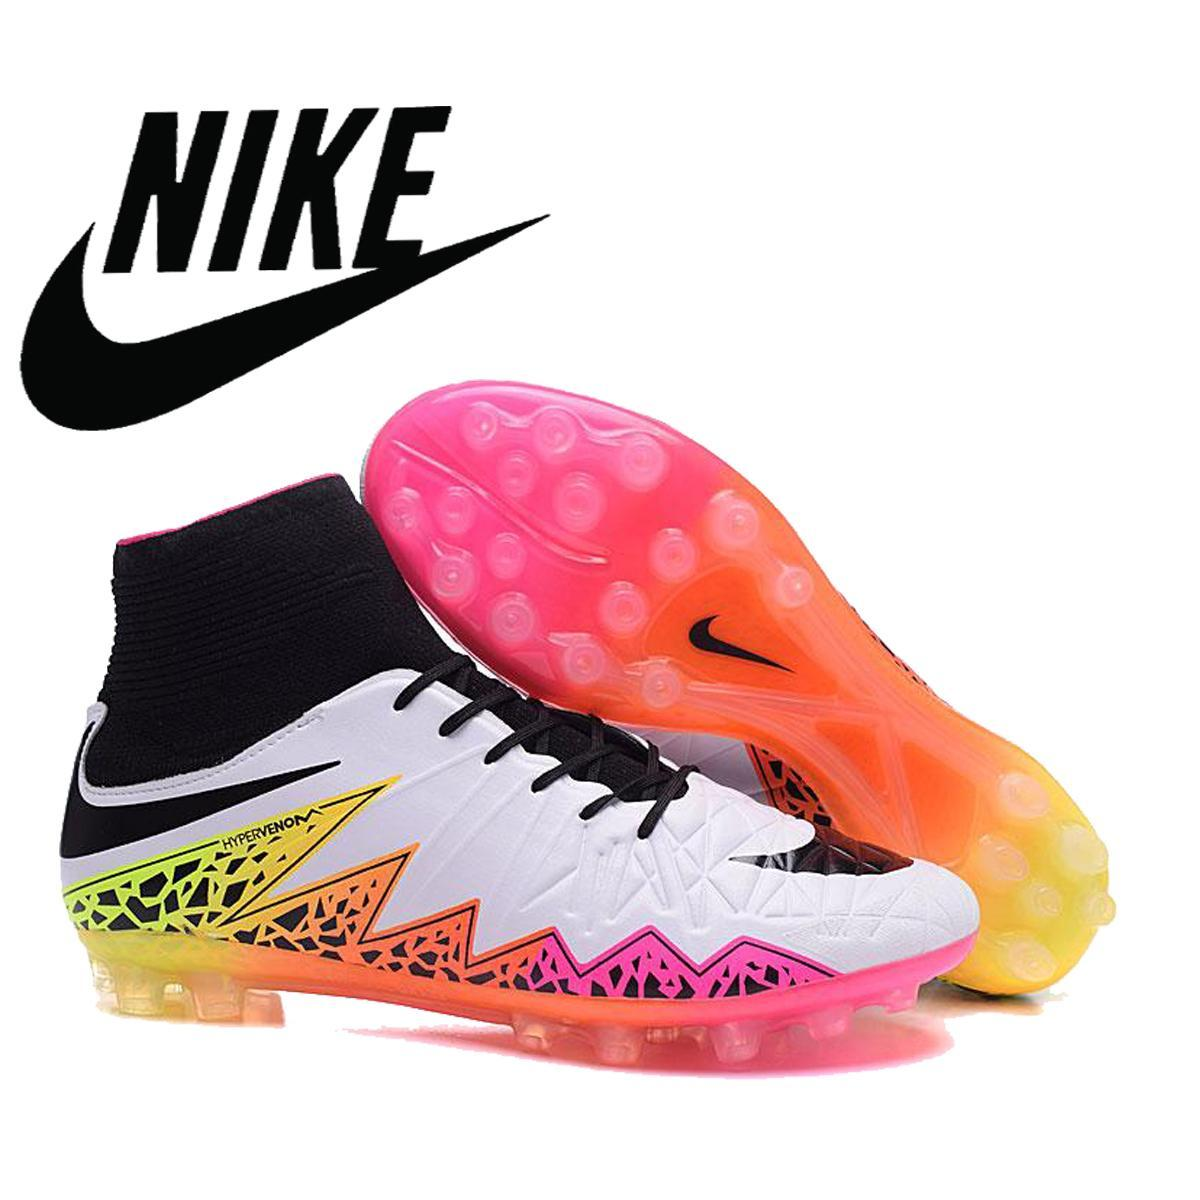 wholesale nike hypervenom phantom ii fg soccer cleats with